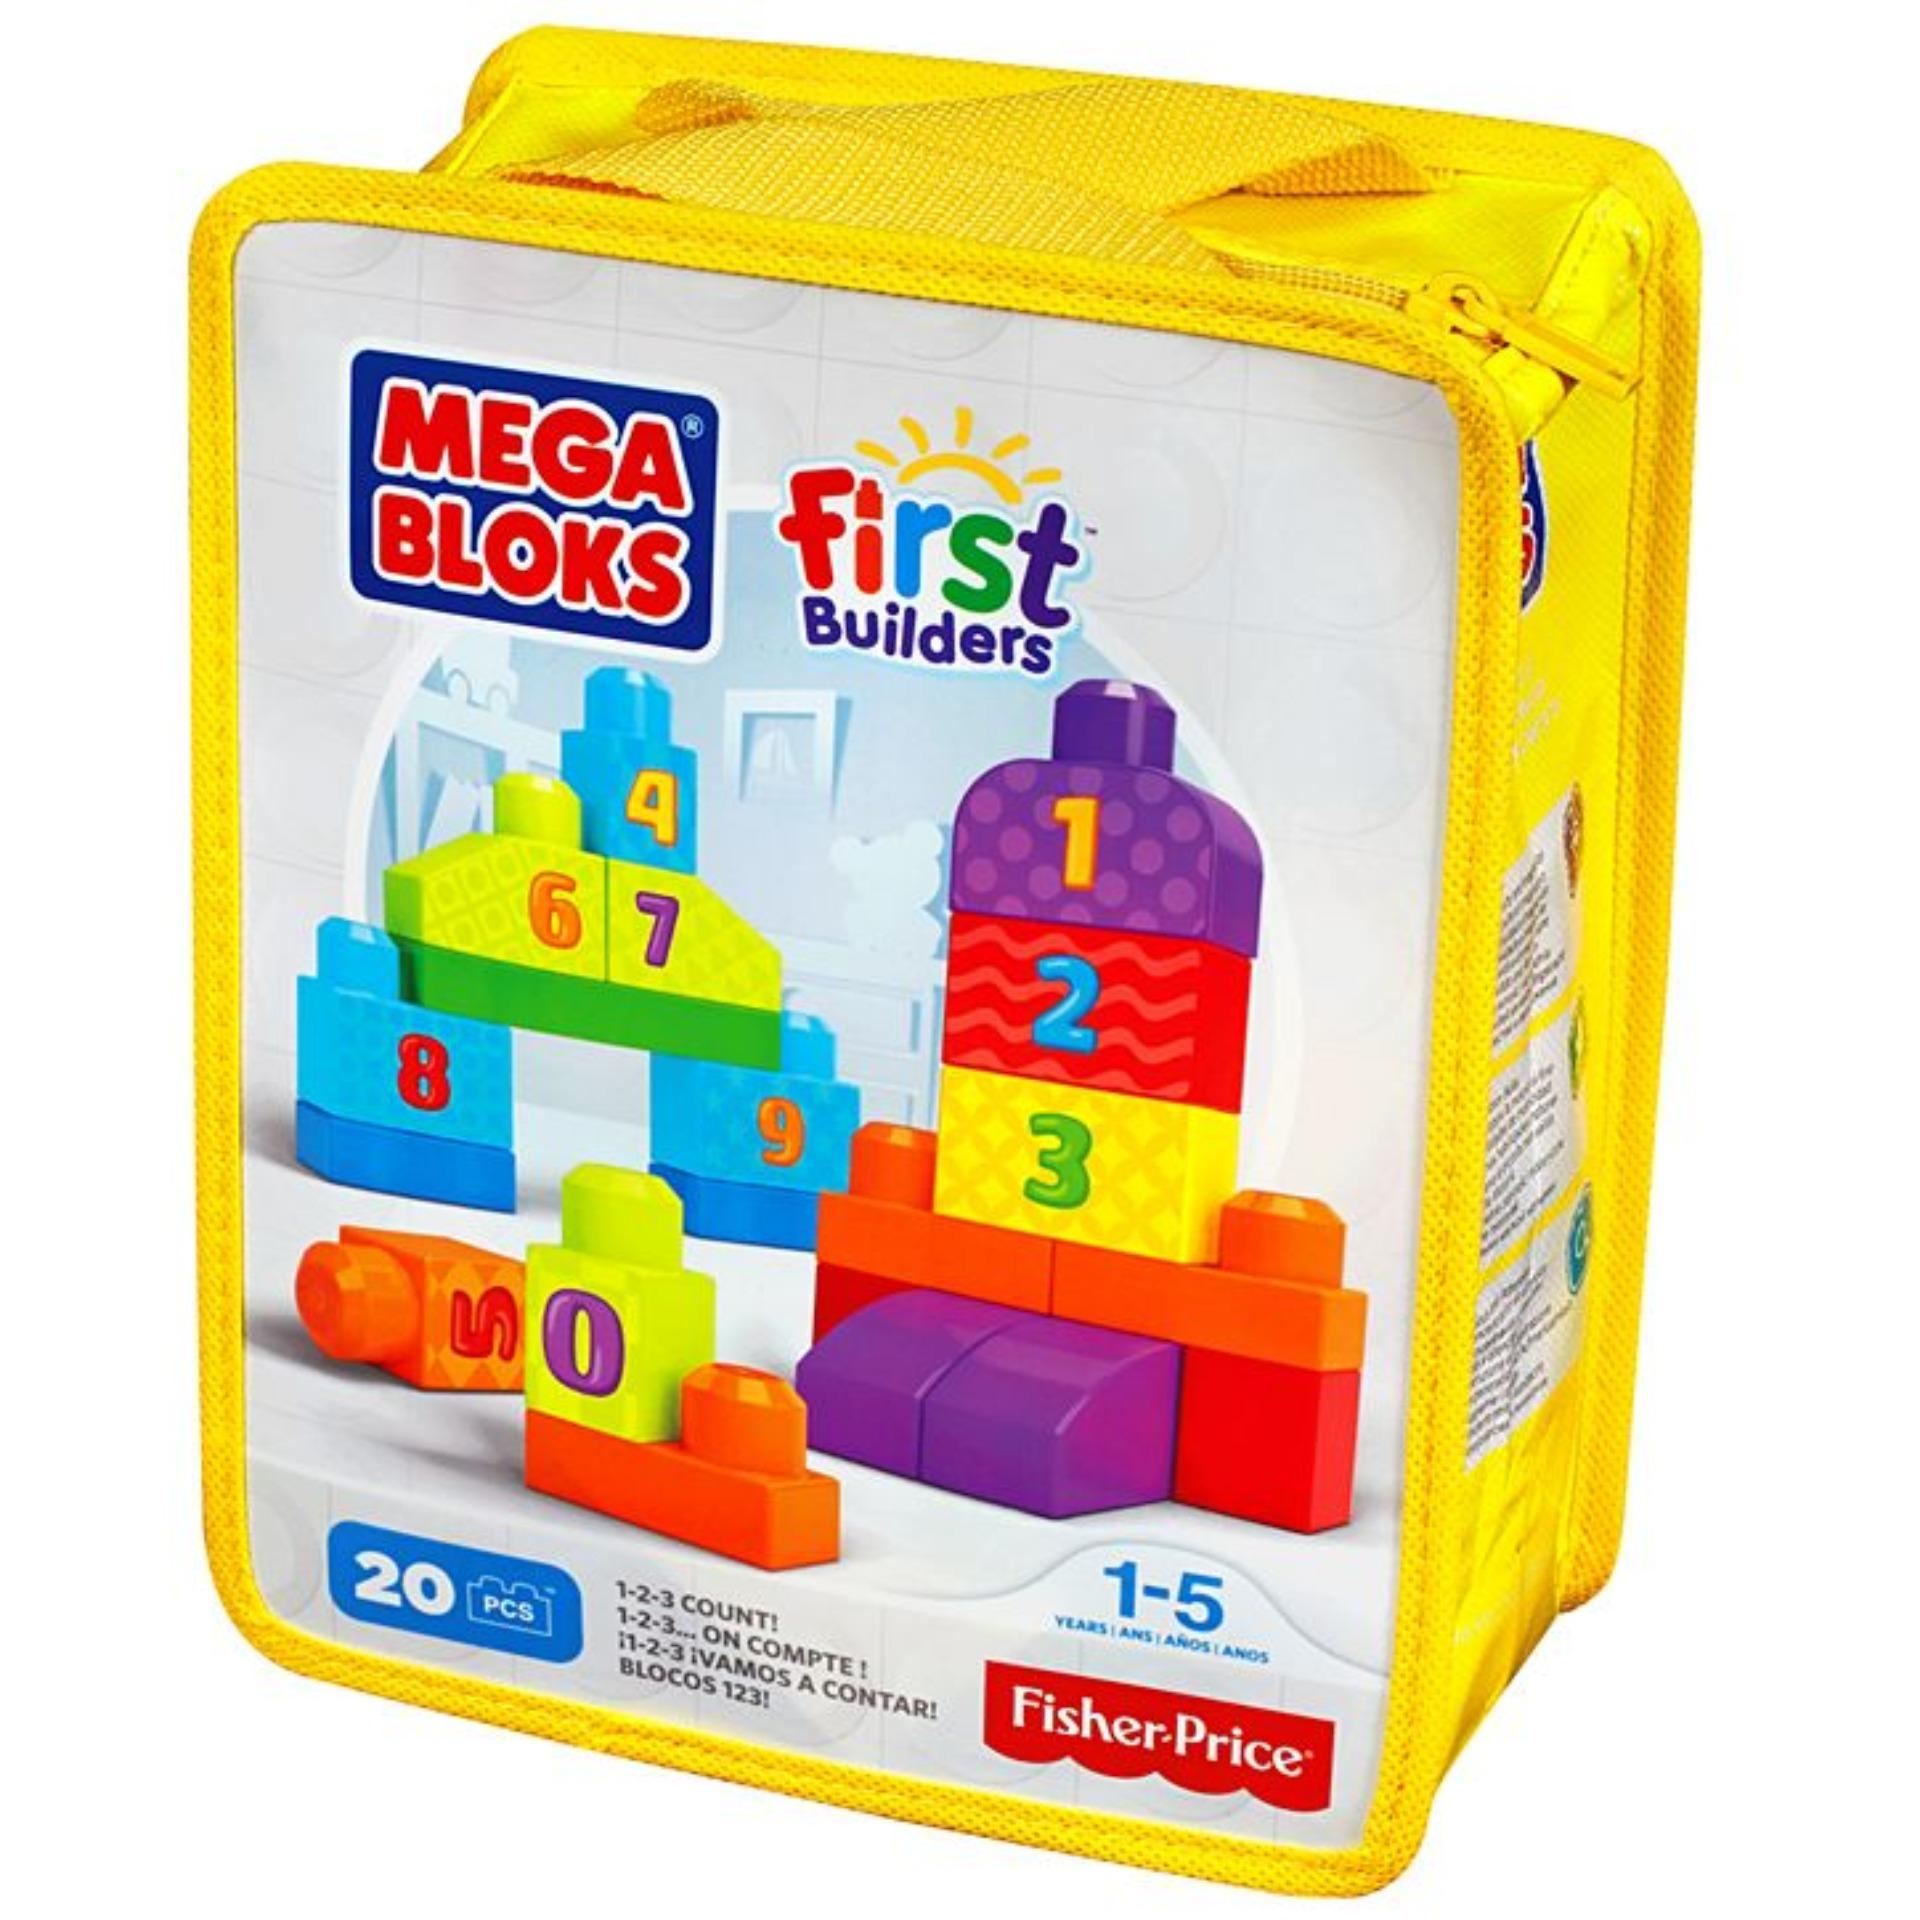 Baby Blocks For Sale Stacking Toys Online Brands Prices Fisher Price Block Mega Bloks First Builders 123 Count